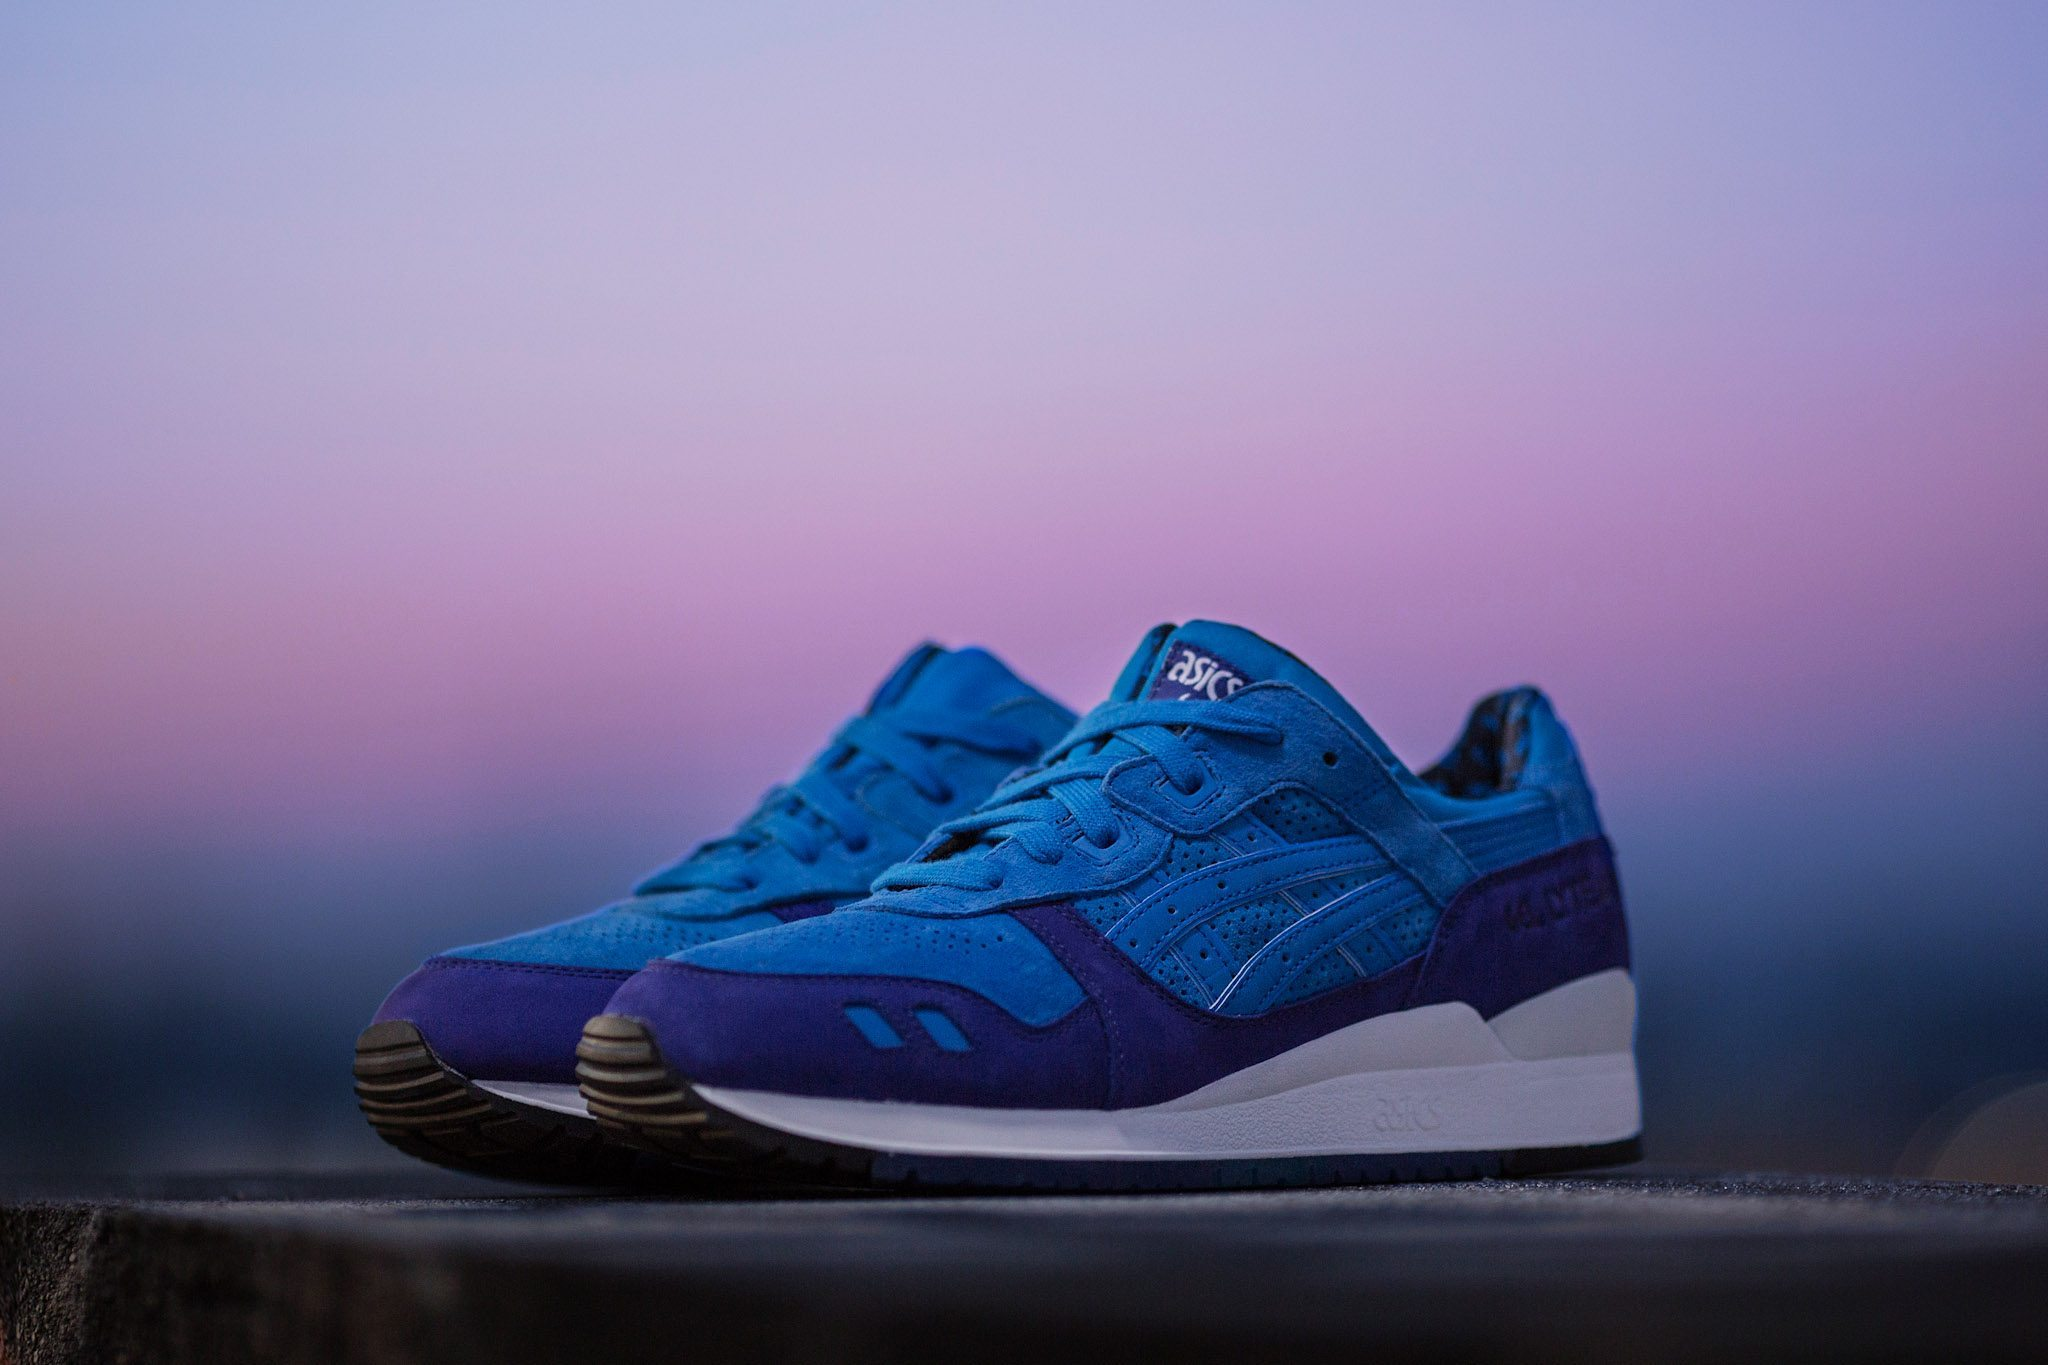 HANON x ASICS Gel Lyte III Light Night 1